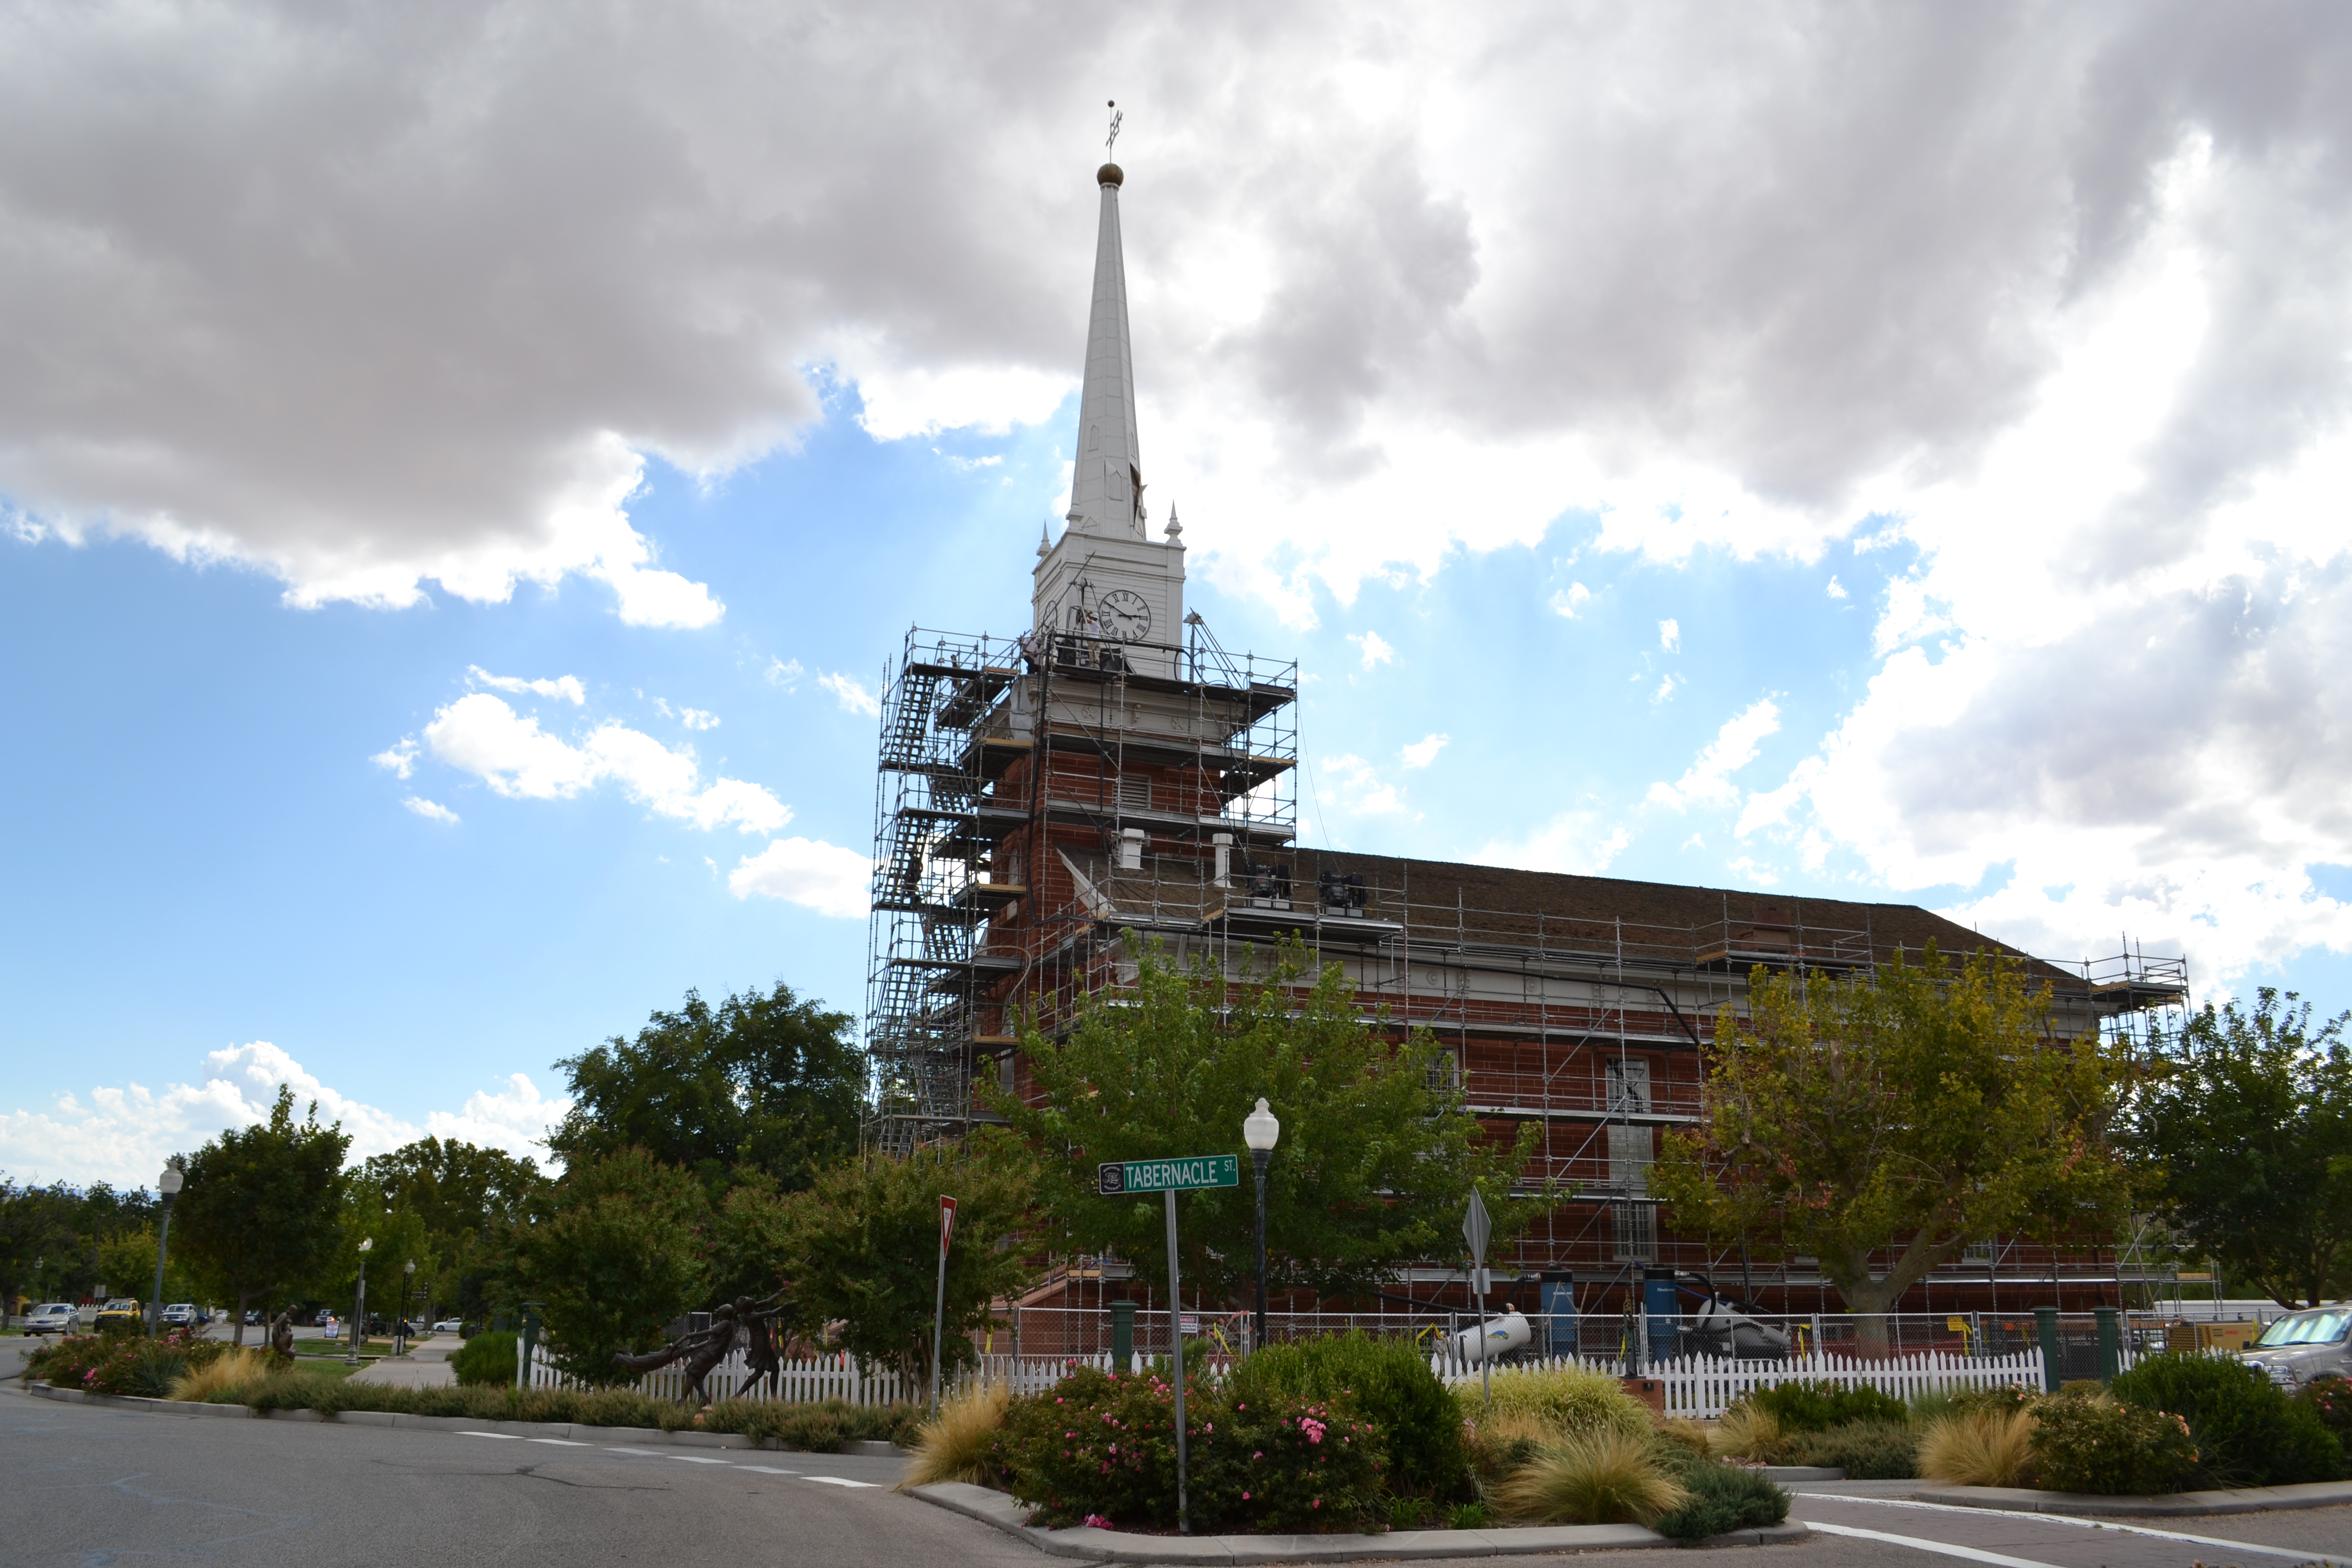 The Church of Jesus Christ of Latter-day Saint's historic Tabernacle is under renovation for structural upgrades, St. George, Utah, Sept. 22, 2016   Photo by Joseph Witham, St. George News